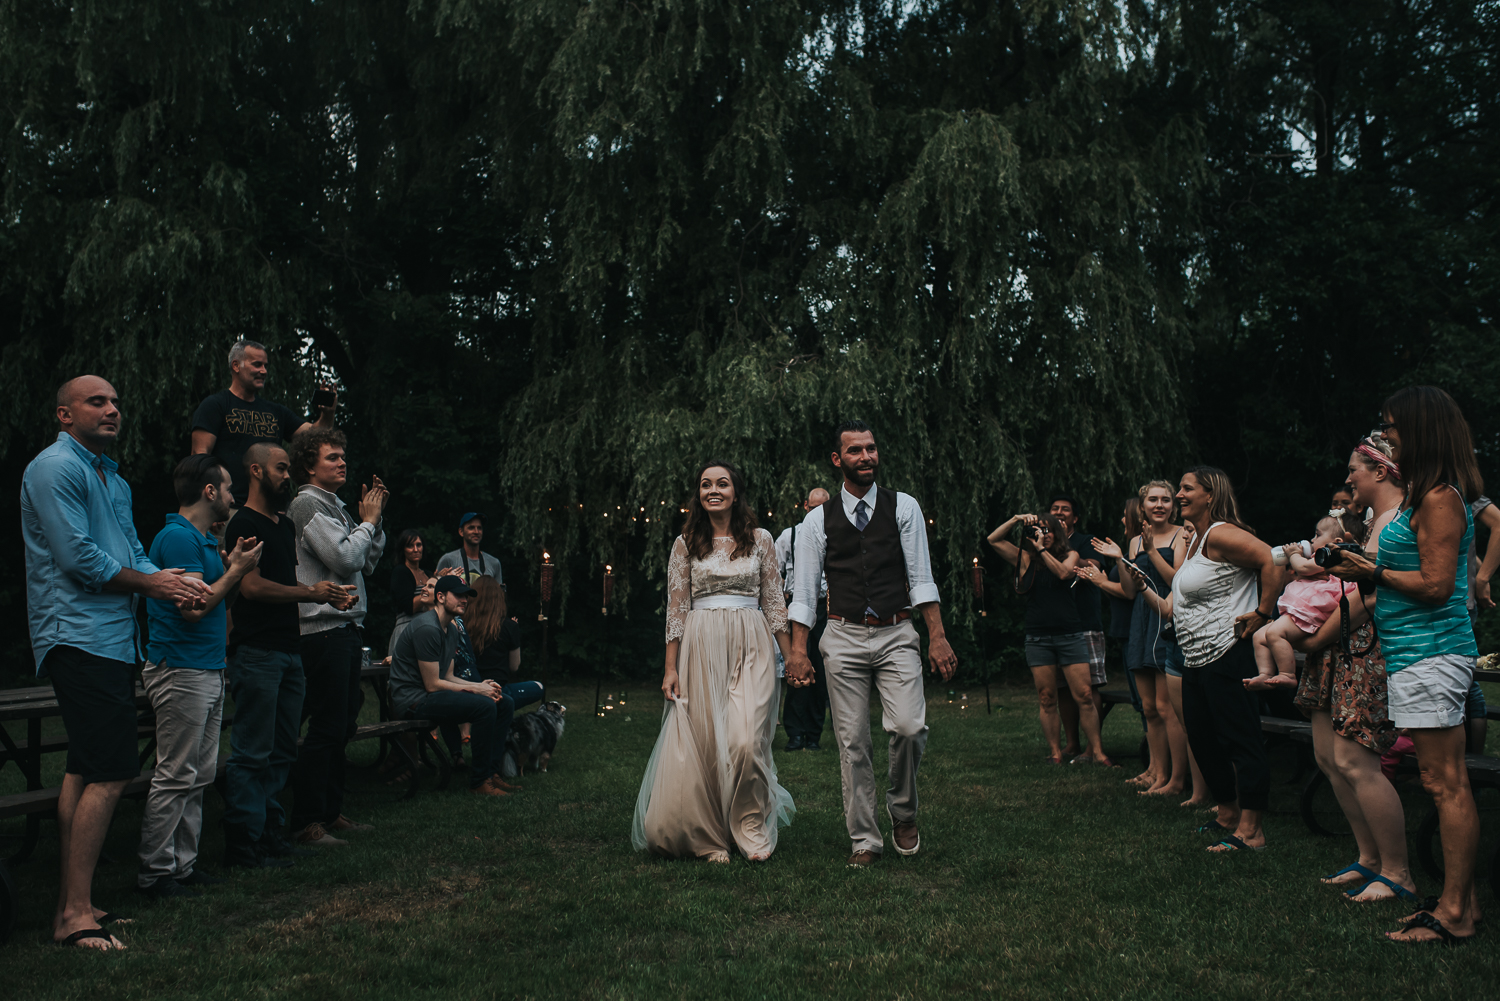 Bride in a blush and lace dress groom in beige pants brown vest and white shirt walk down the aisle surrounded by family friends trees and twinkly lights